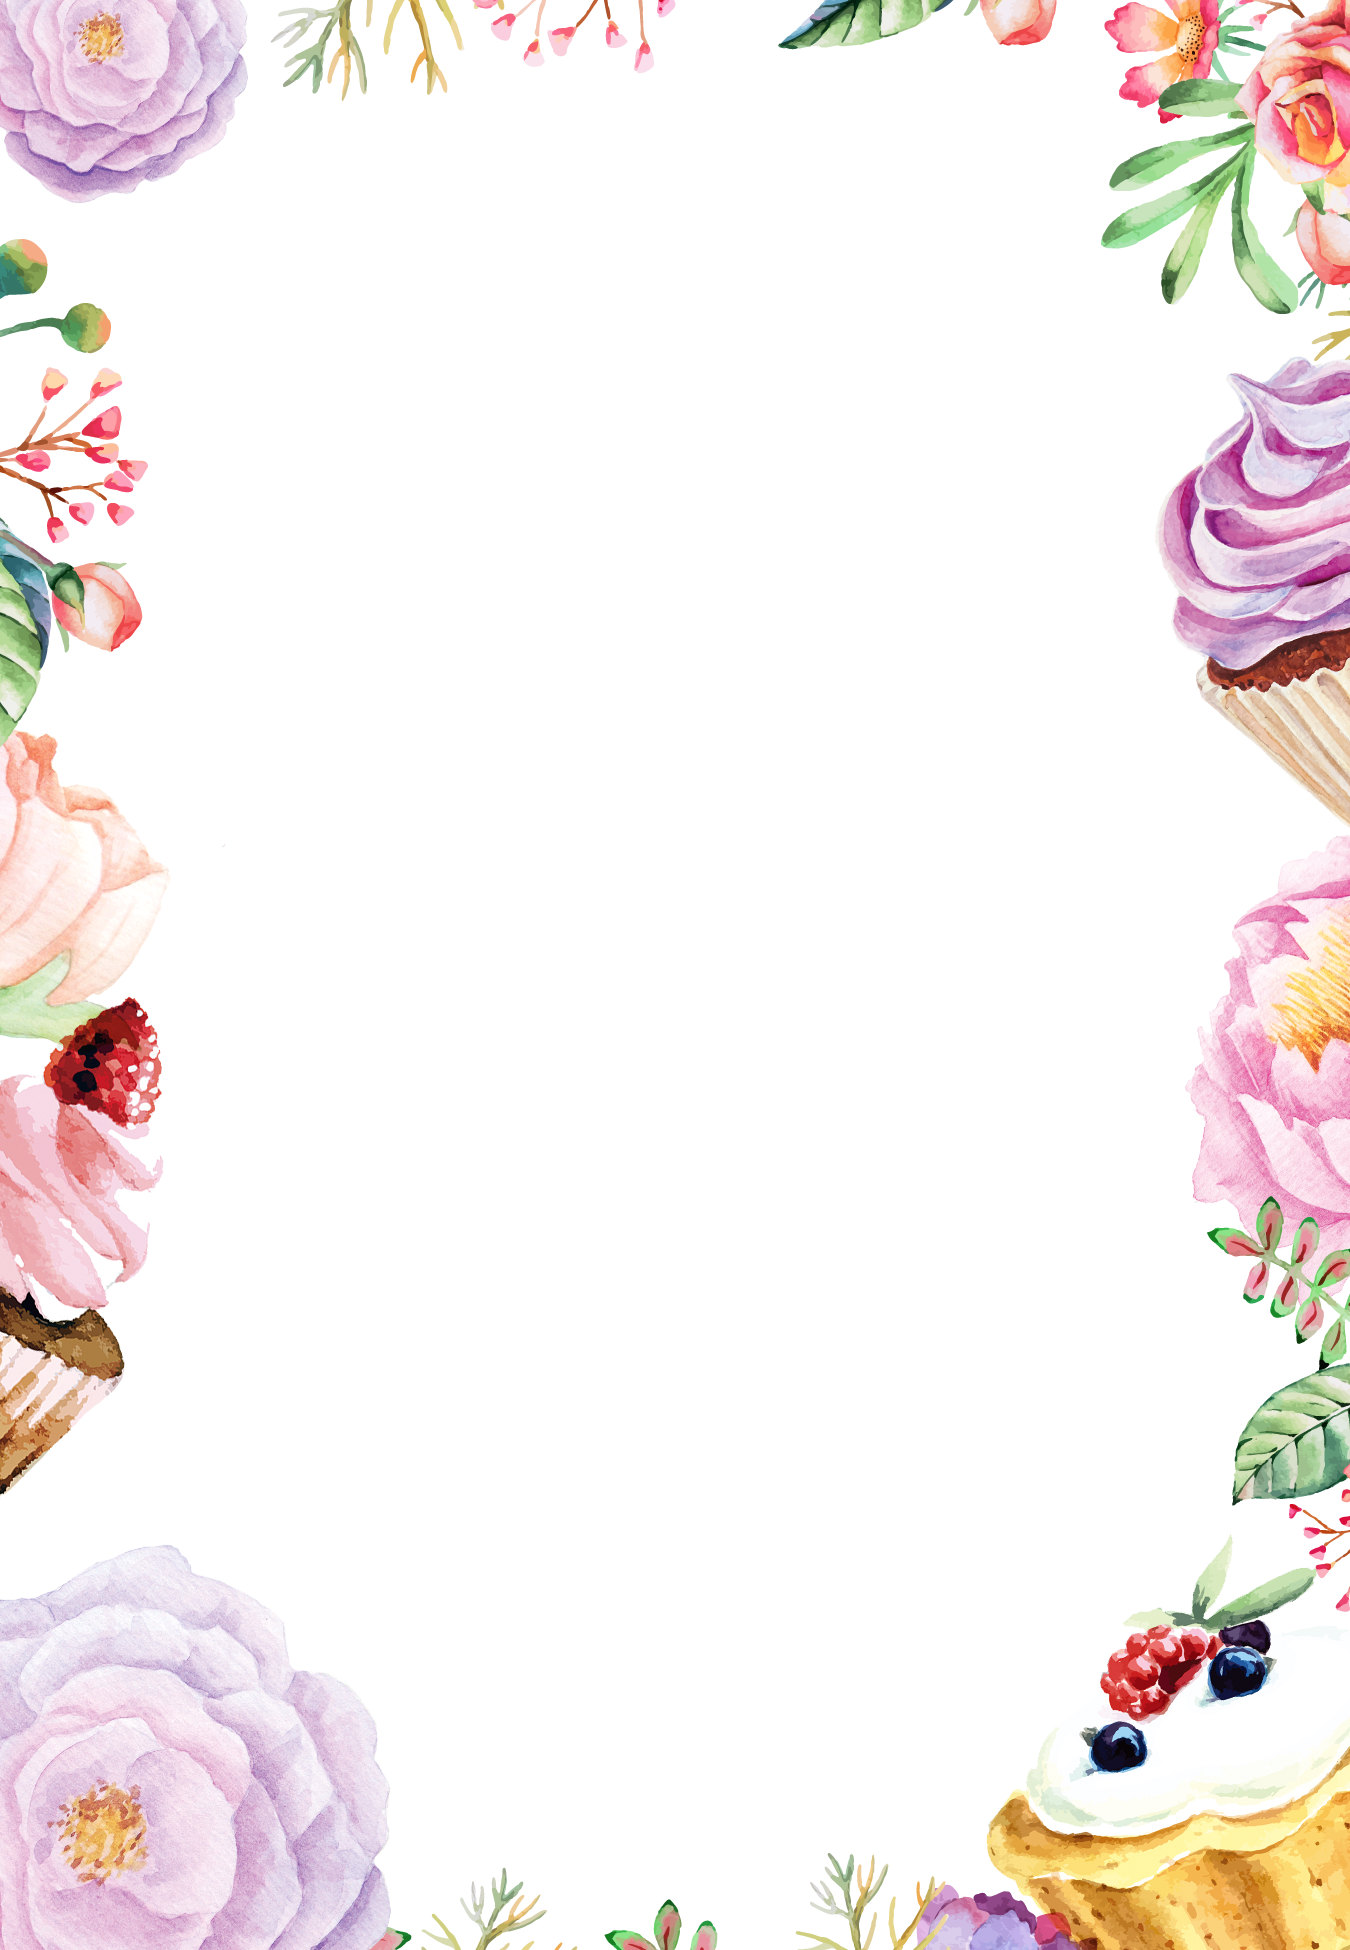 Watercolor flowers border png. Painting flower drawing background